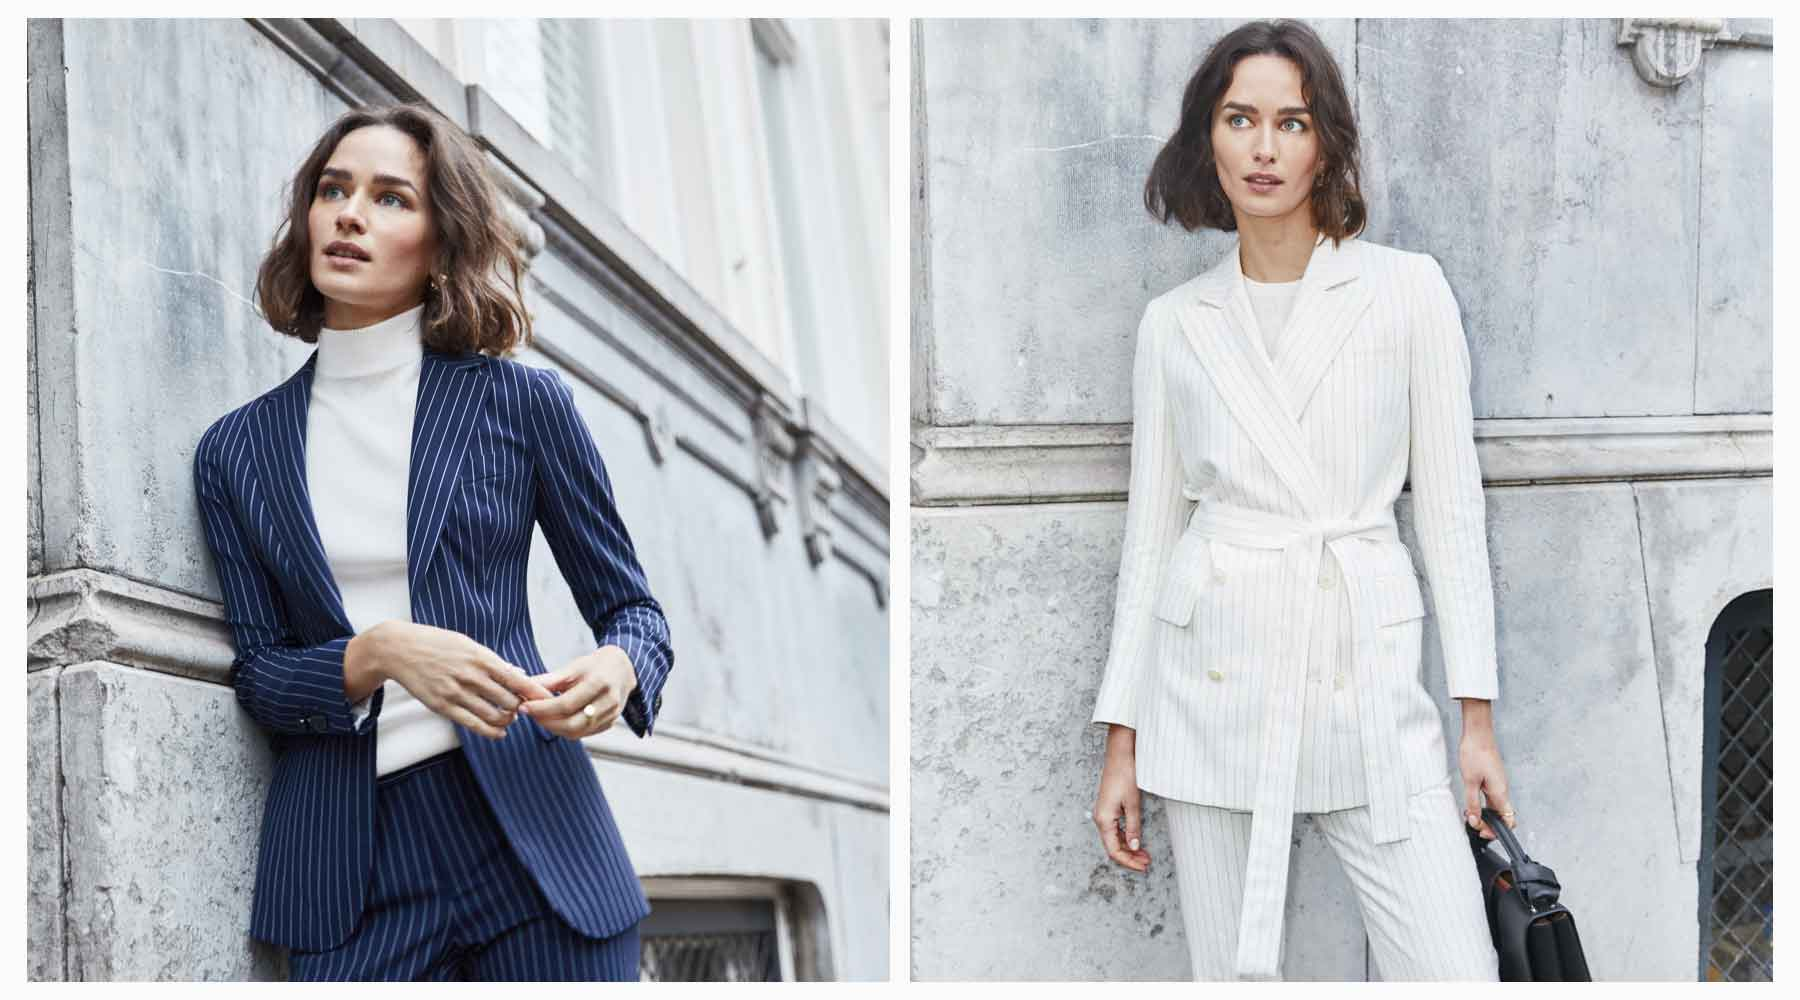 Styling for a fashion shoot with women's suits in Amsterdam.